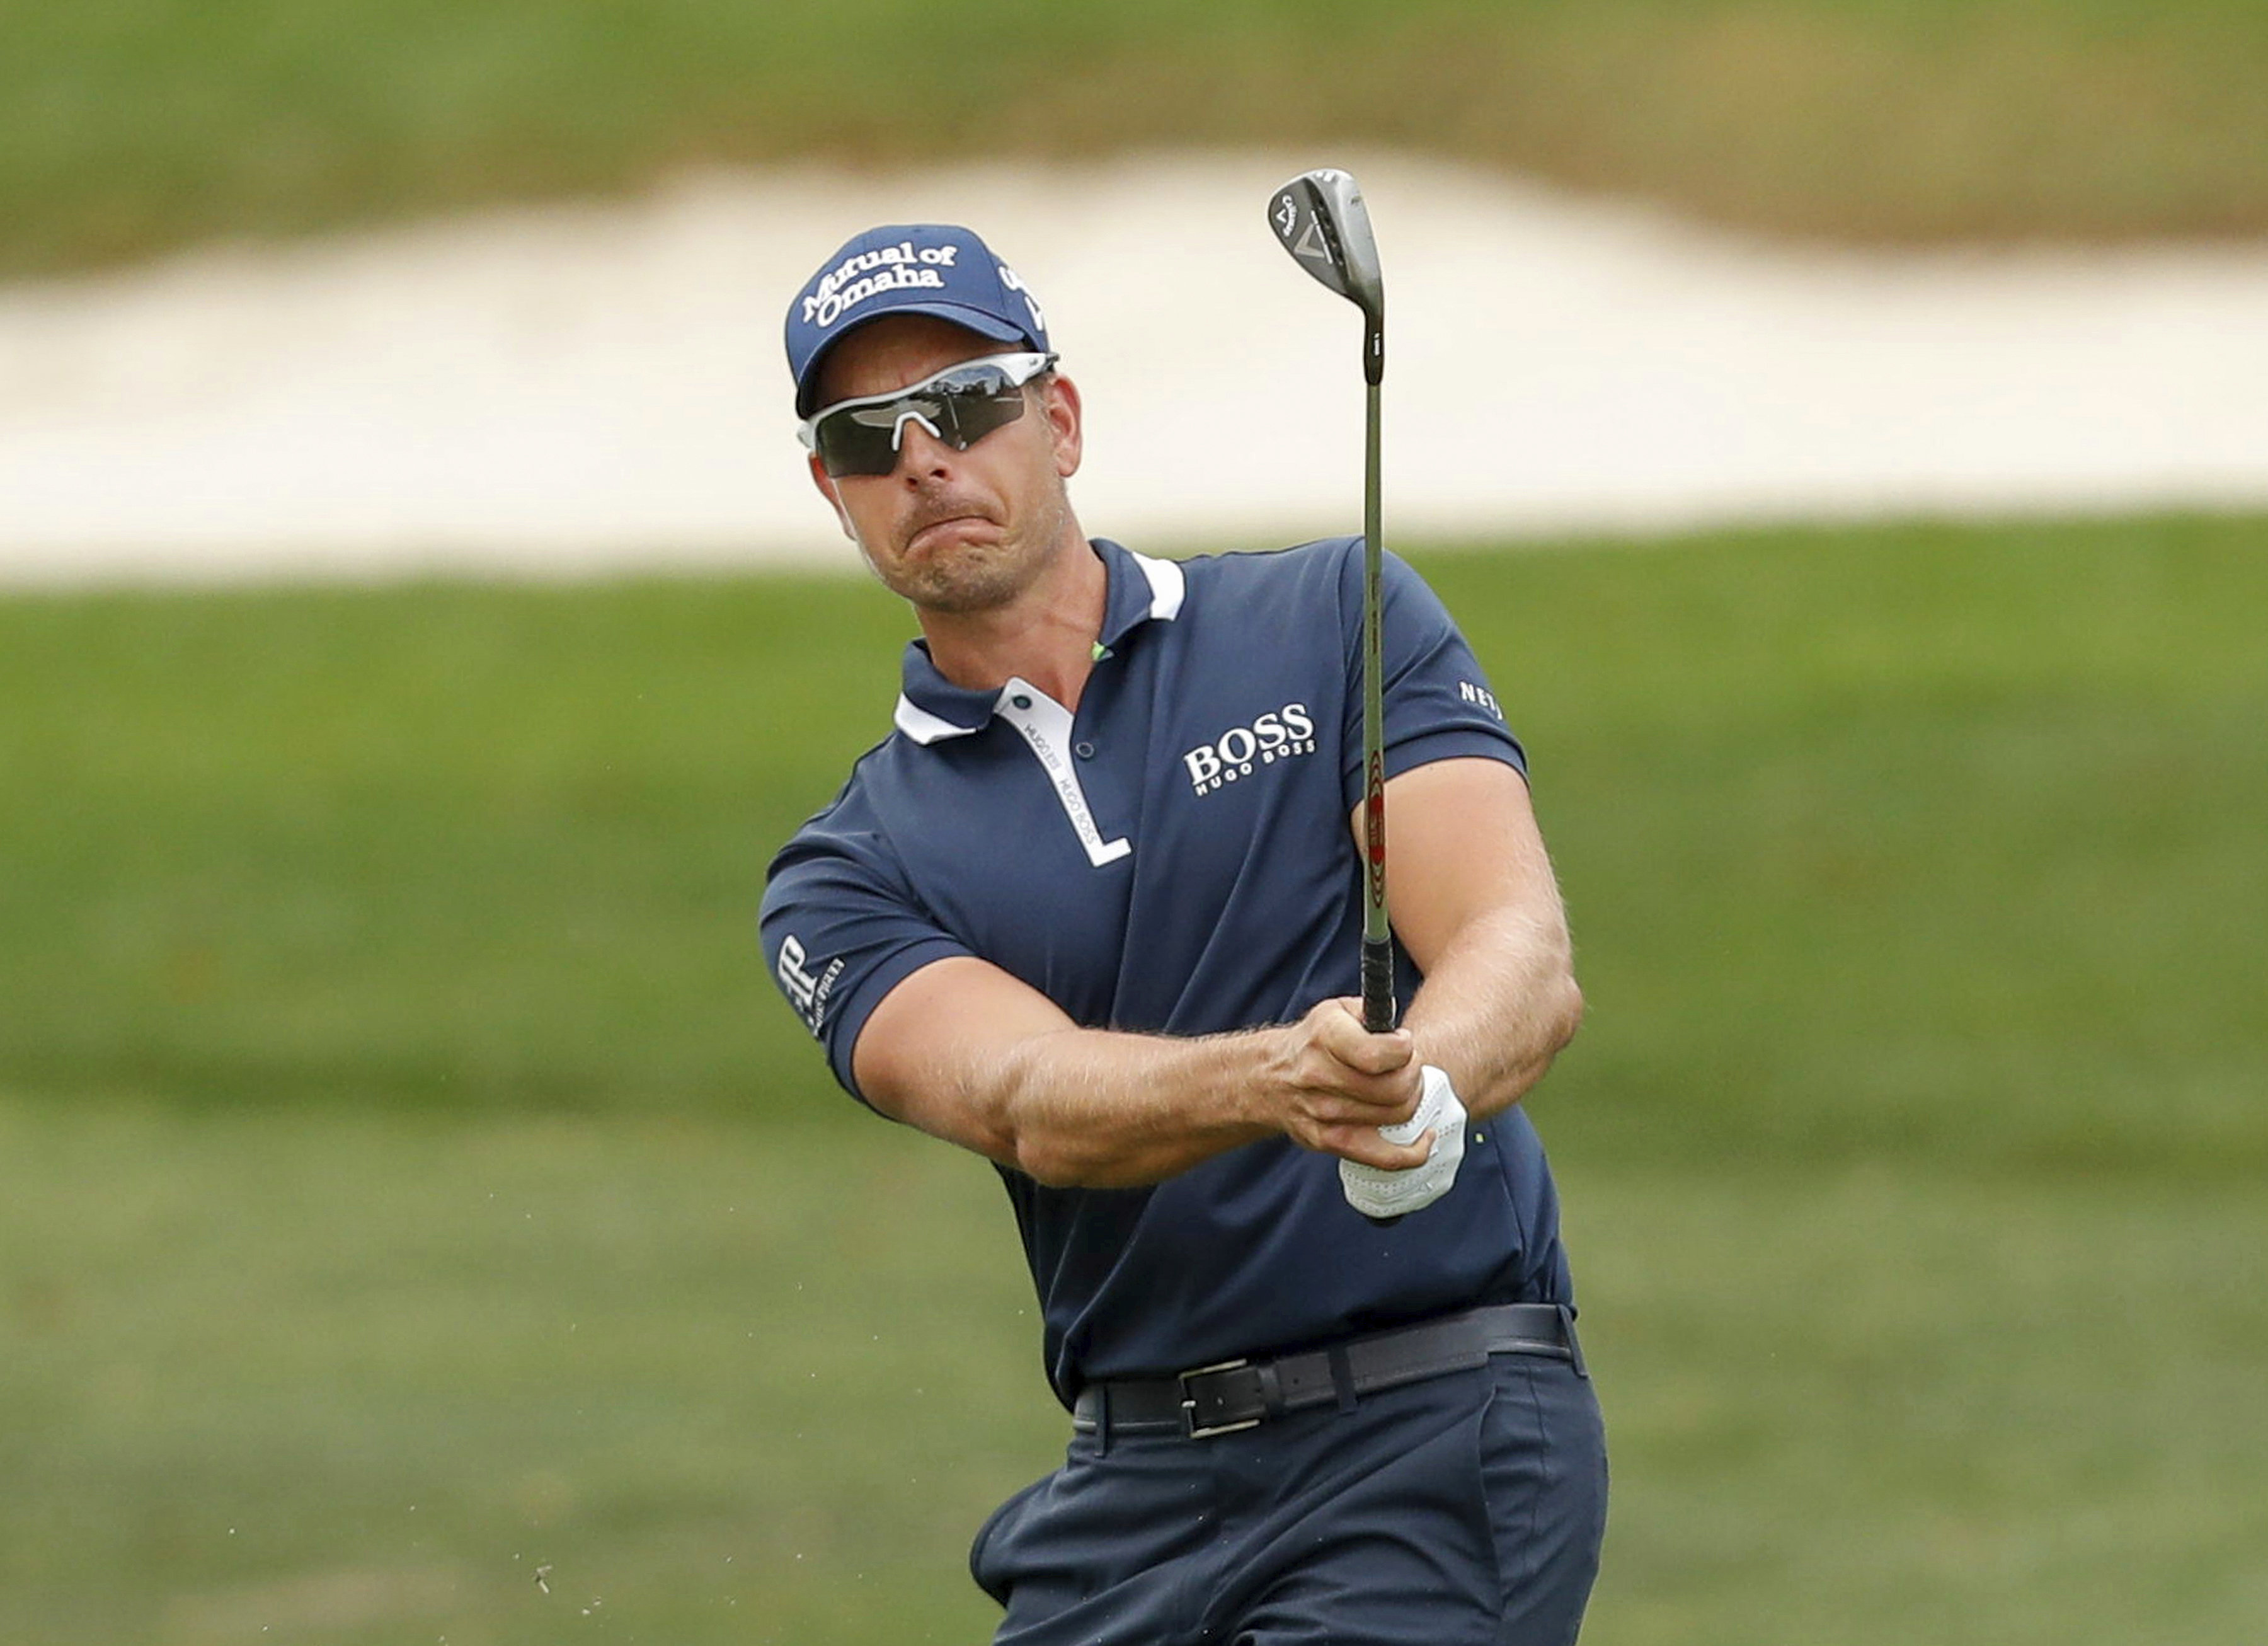 Henrik Stenson, of Sweden, follows through on a chip on the 1st hole during the final round of the Valspar Championship golf tournament, Sunday, March 12, 2017, at Innisbrook in Palm Harbor, Fla. (AP Photo/Mike Carlson)